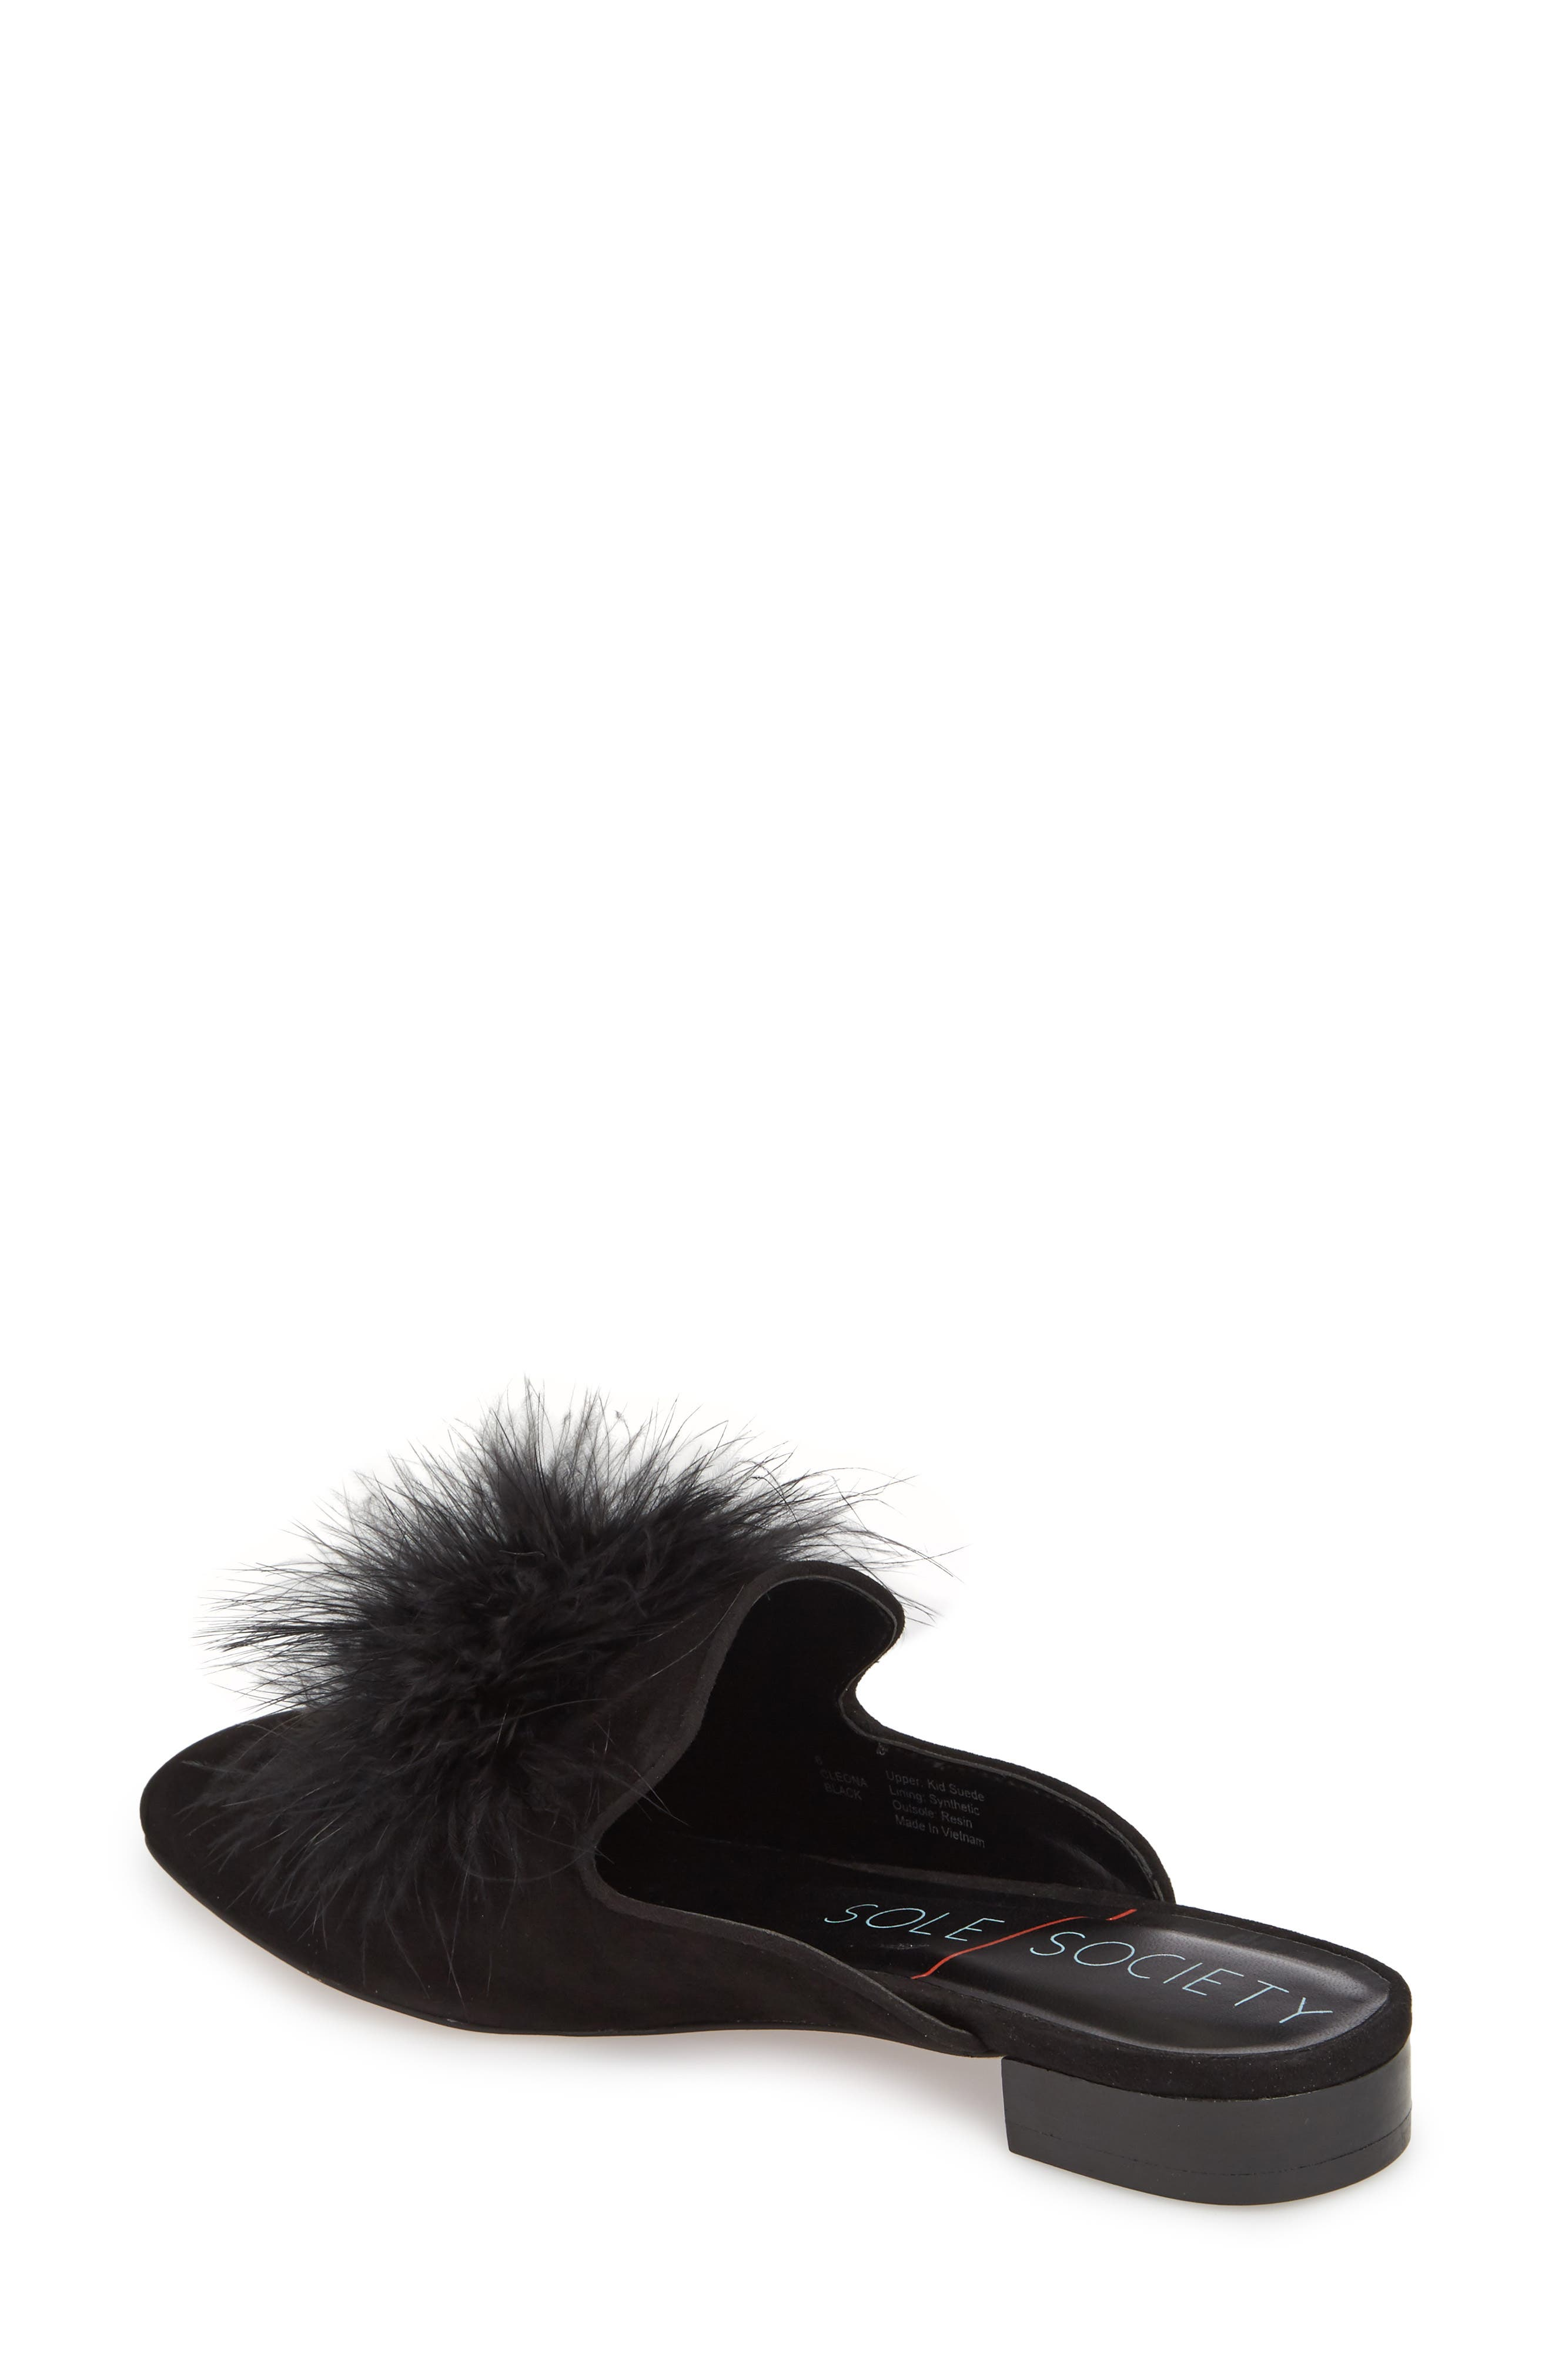 Cleona Feather Pompom Mule,                             Alternate thumbnail 2, color,                             001